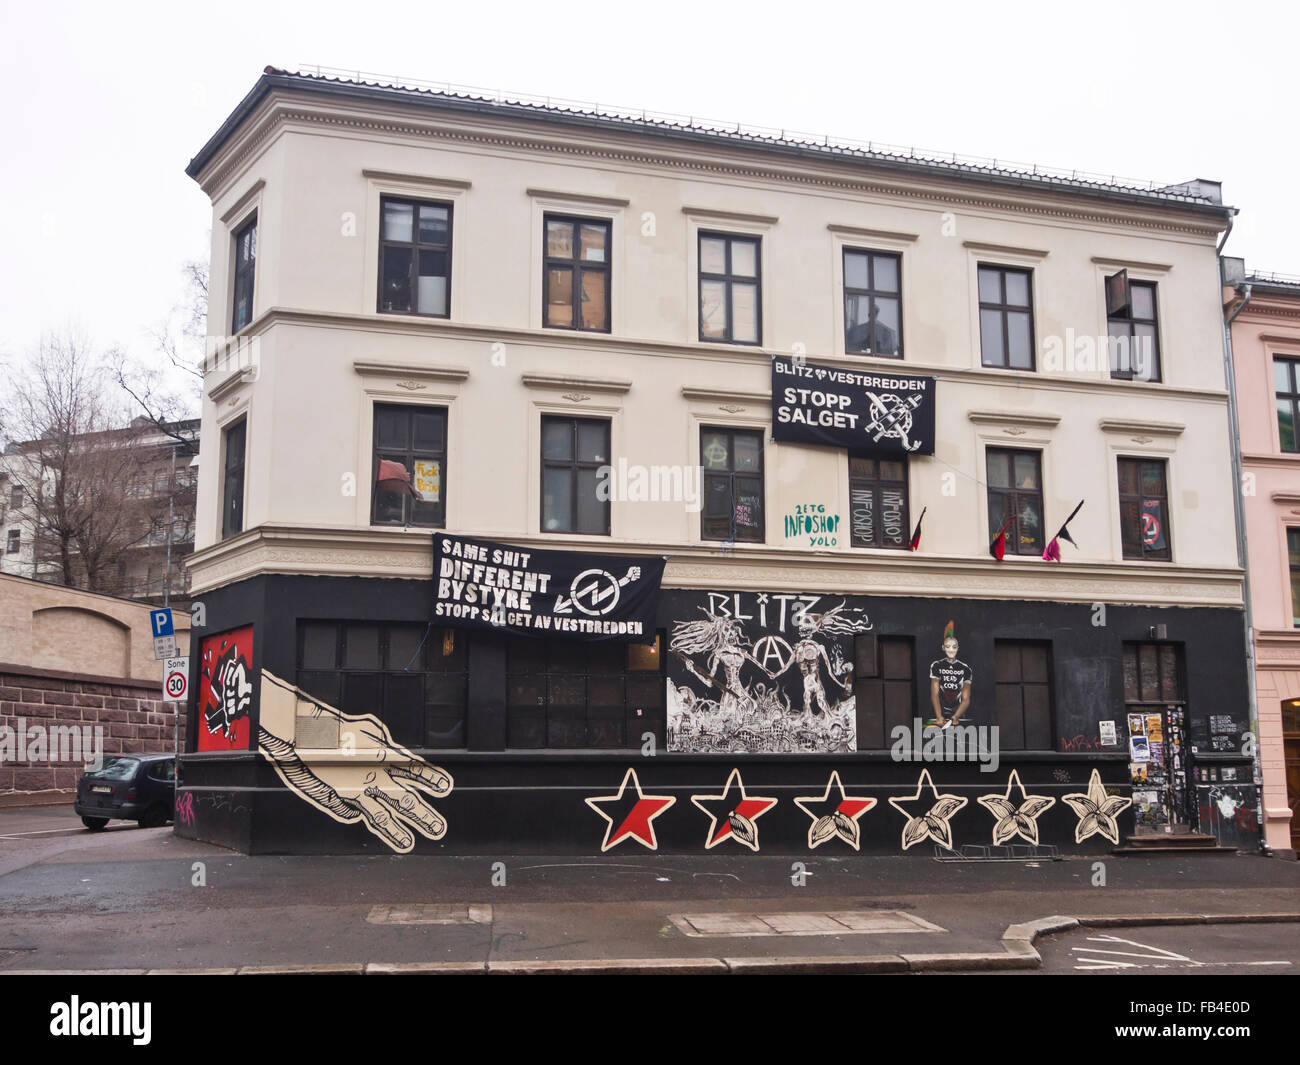 blitz huset first occupied now a culture house for youth in